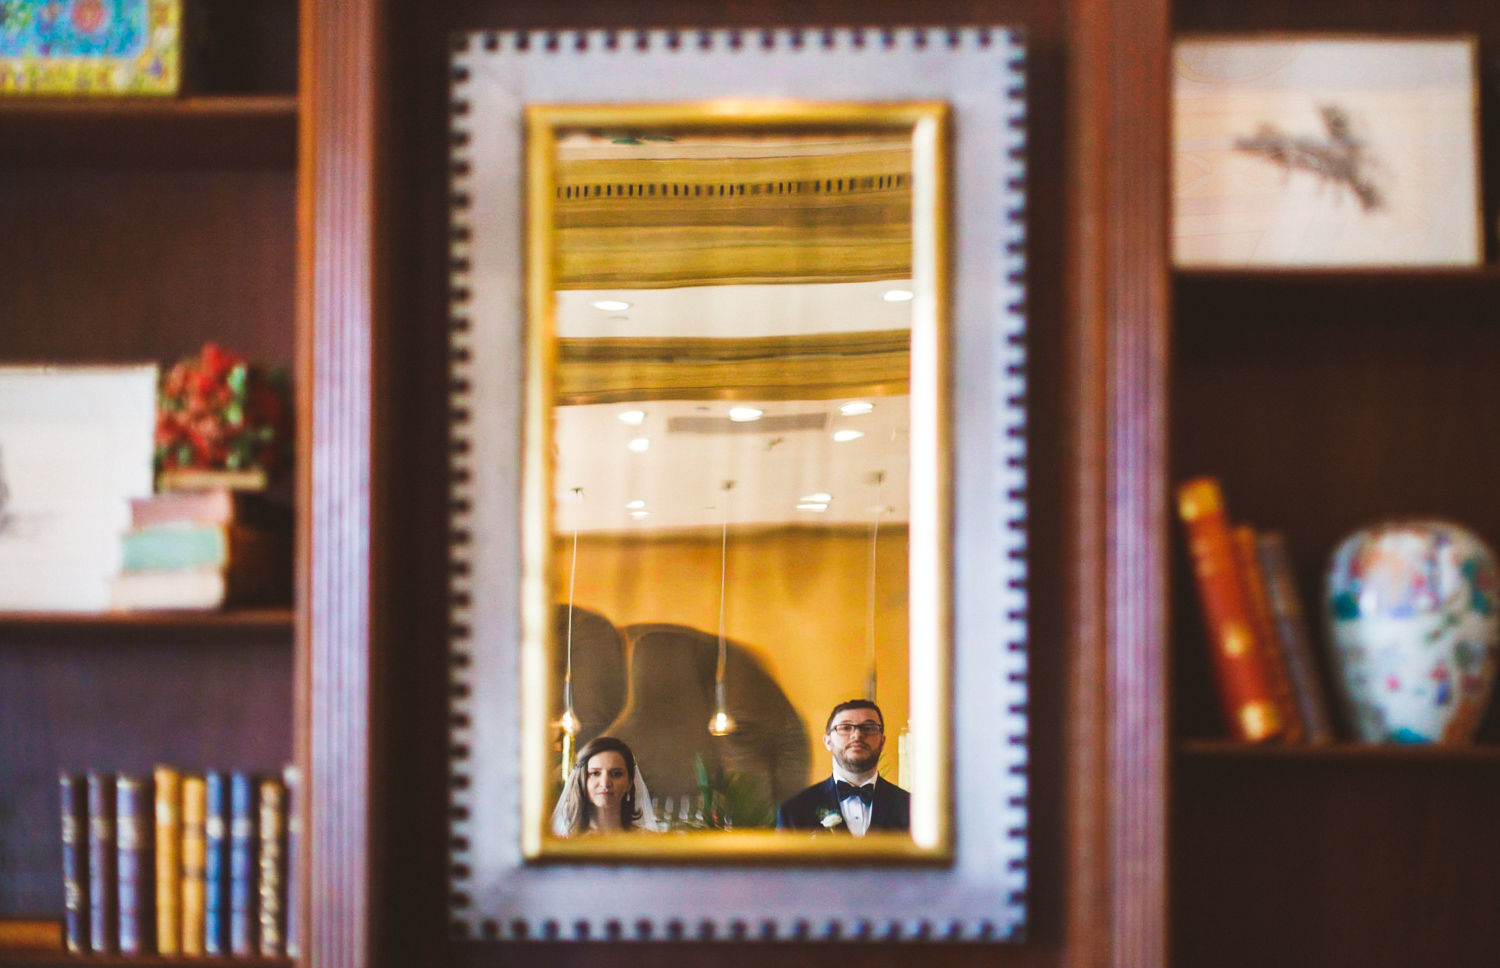 018 - bride and groom amazing portrait in mirror.jpg